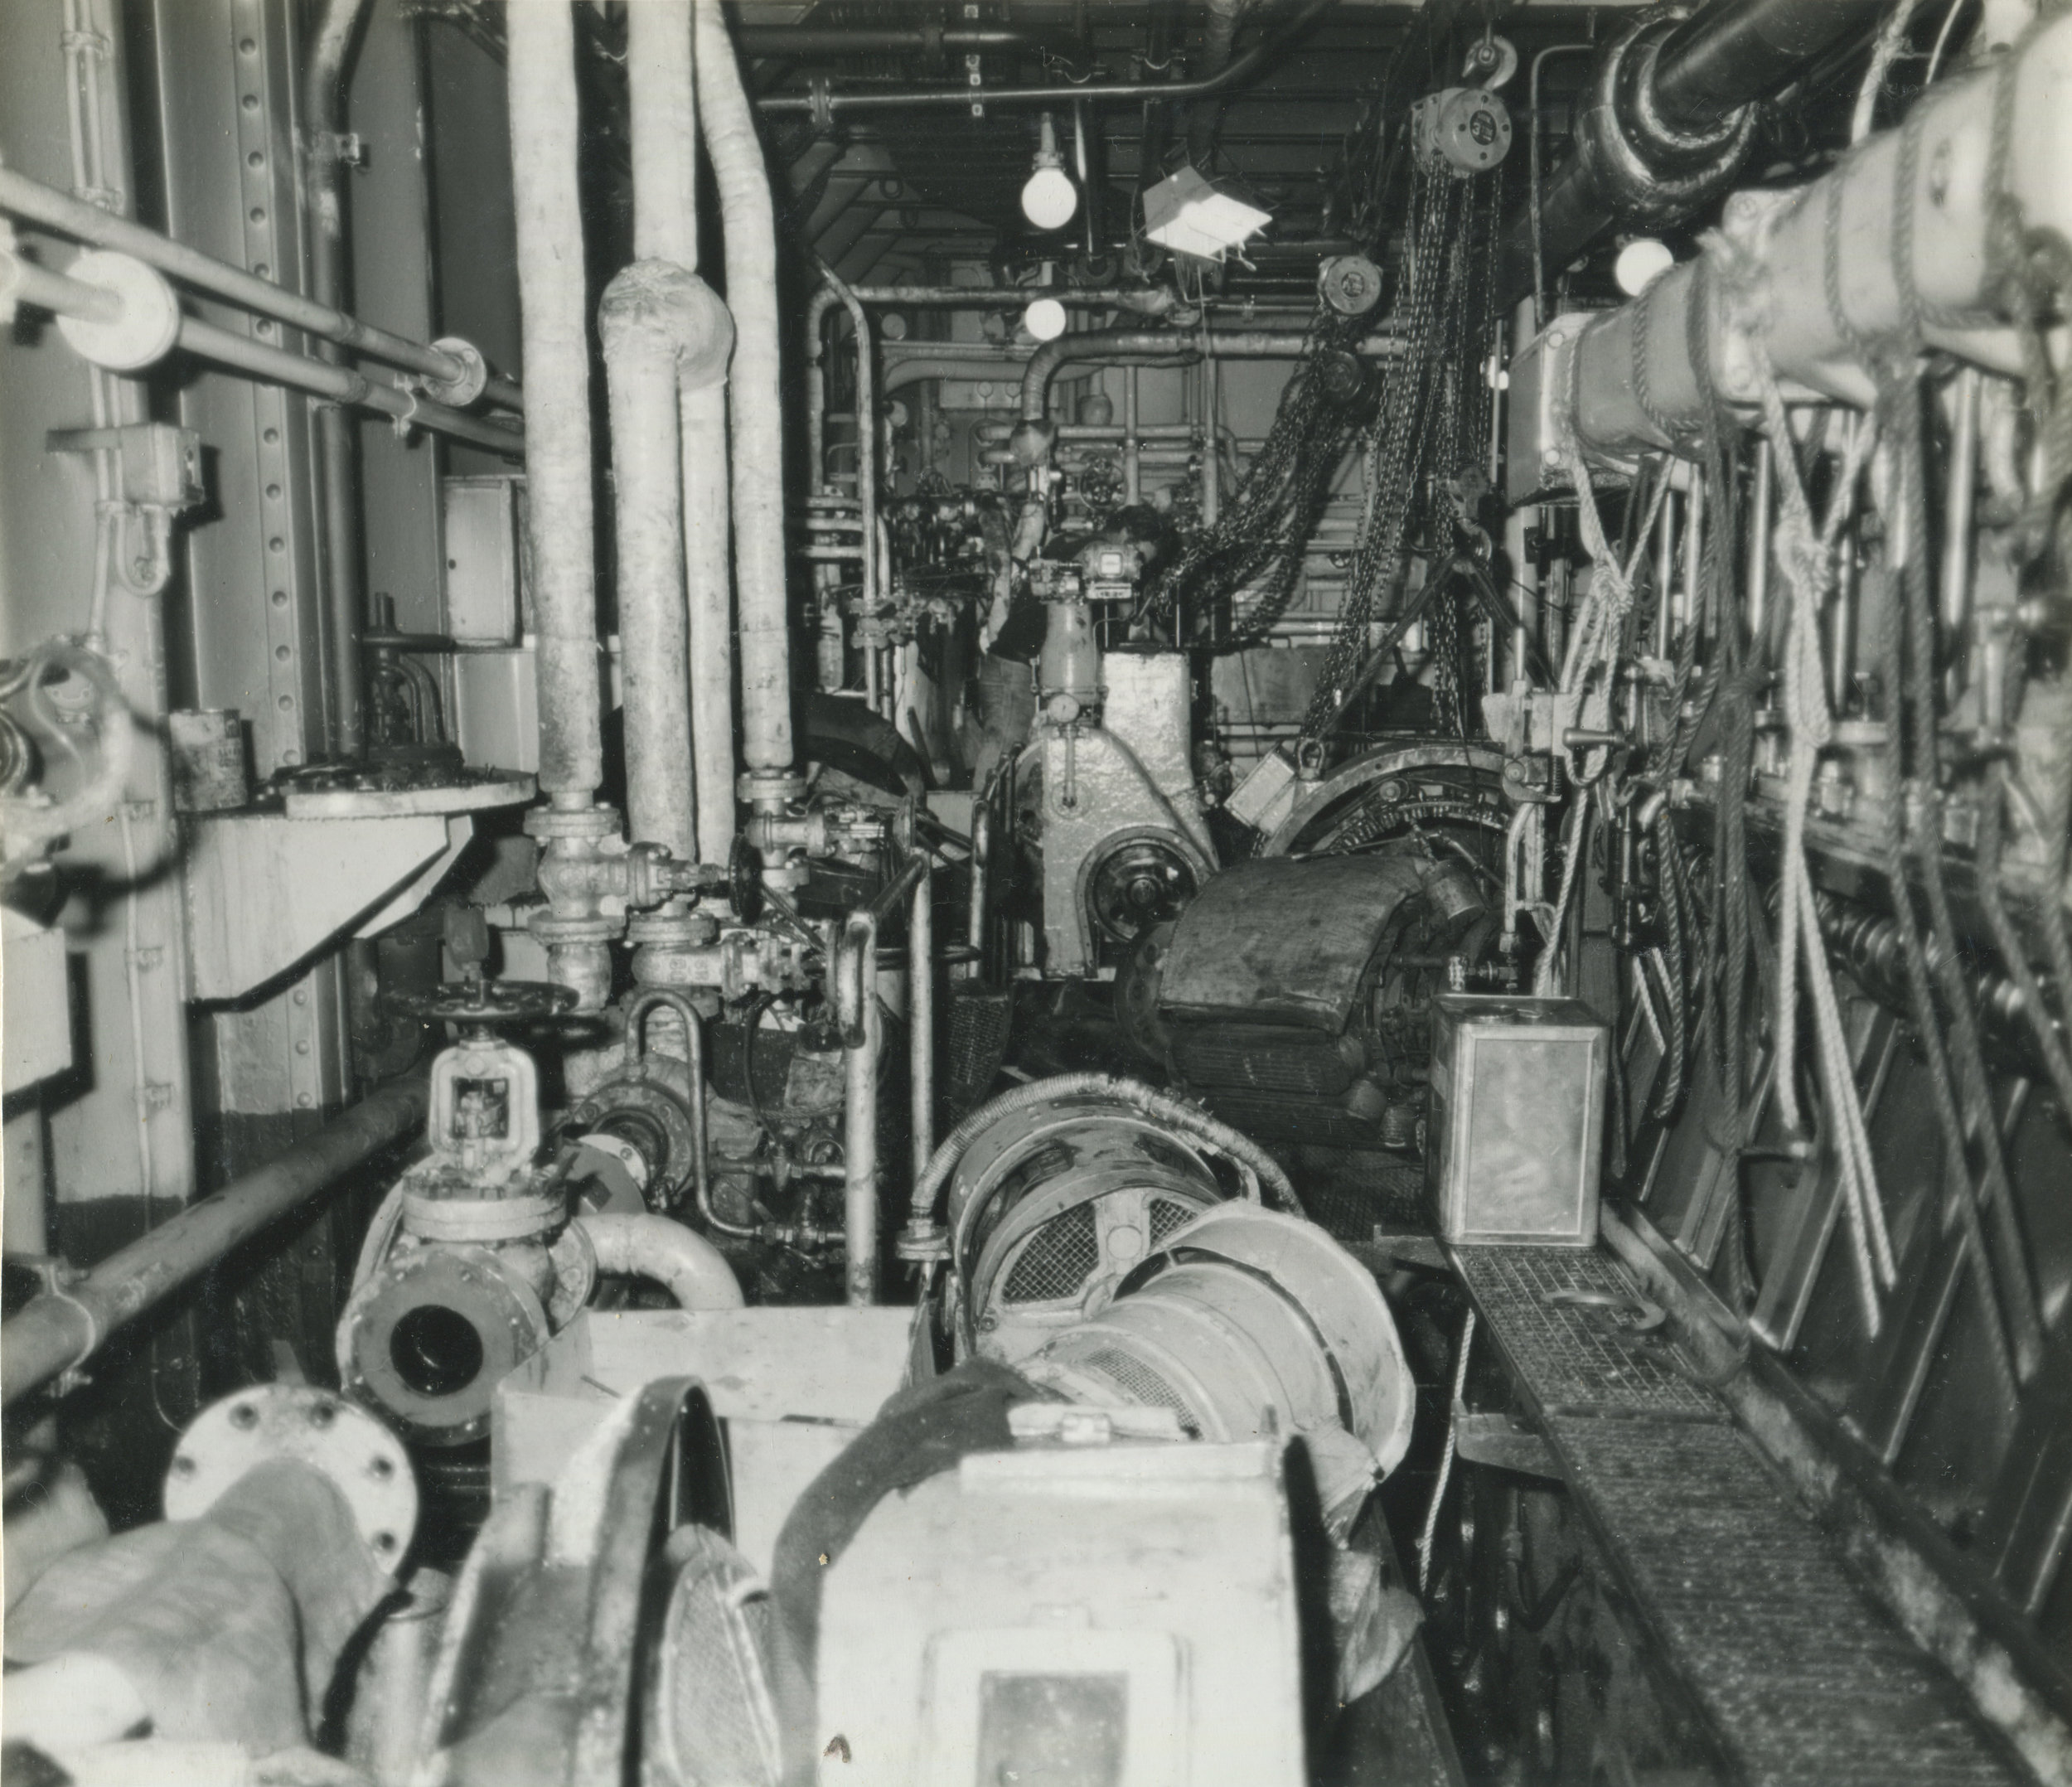 The inner workings of Ship M.V. Taulota in 1973. Courtesy of Titan Engineering.